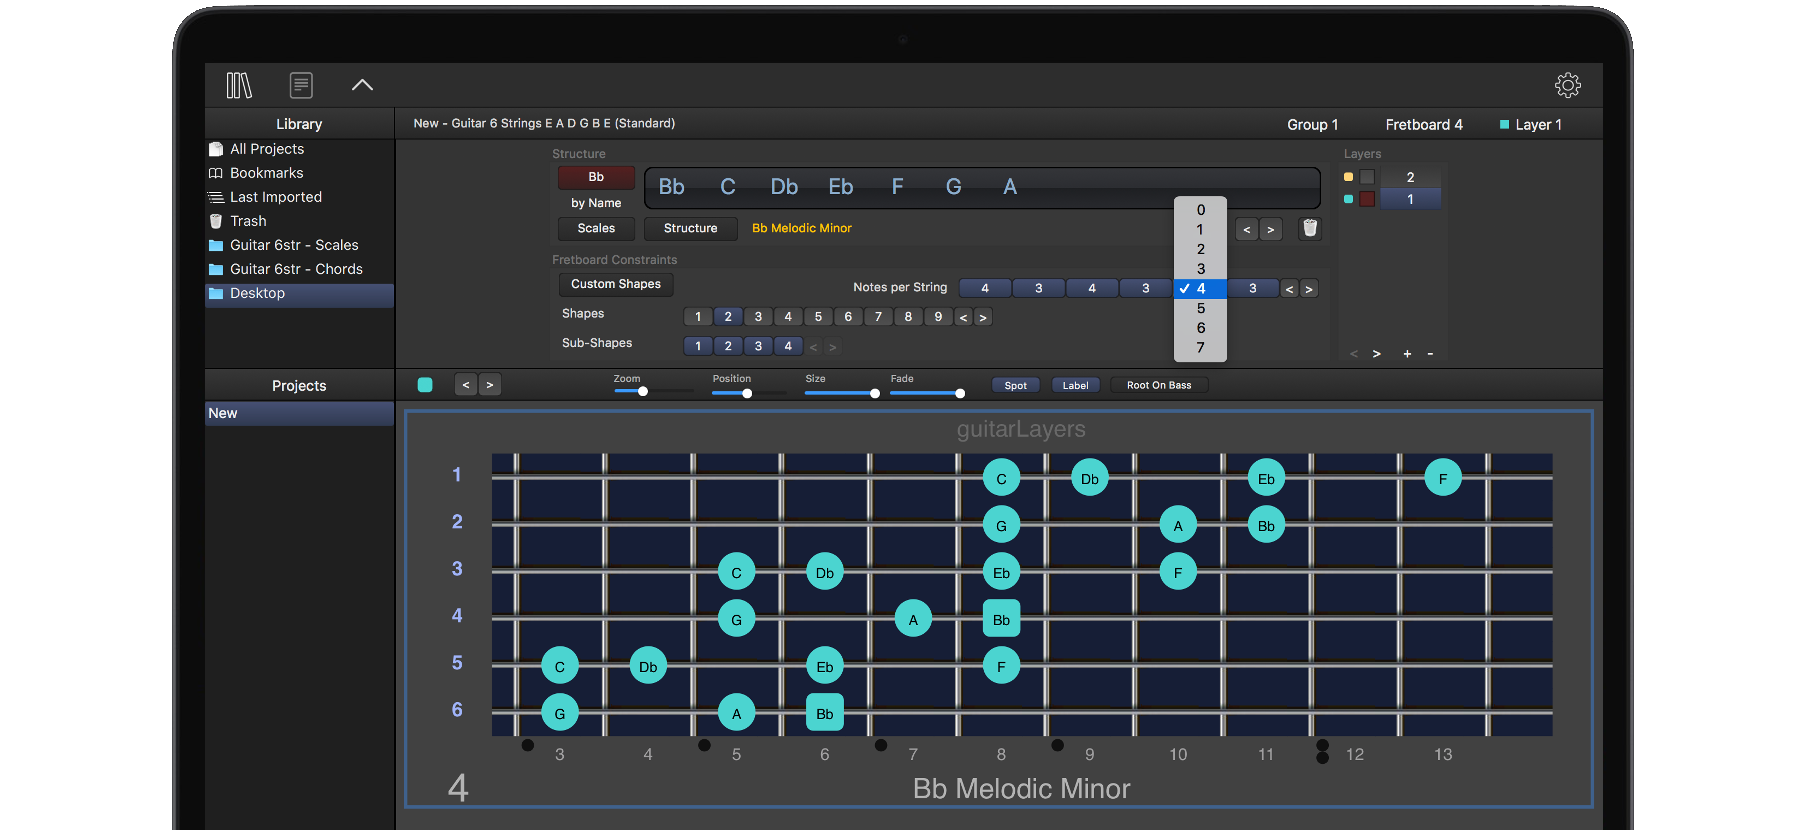 guitarLayers learning platform for scales chords and arpeggios